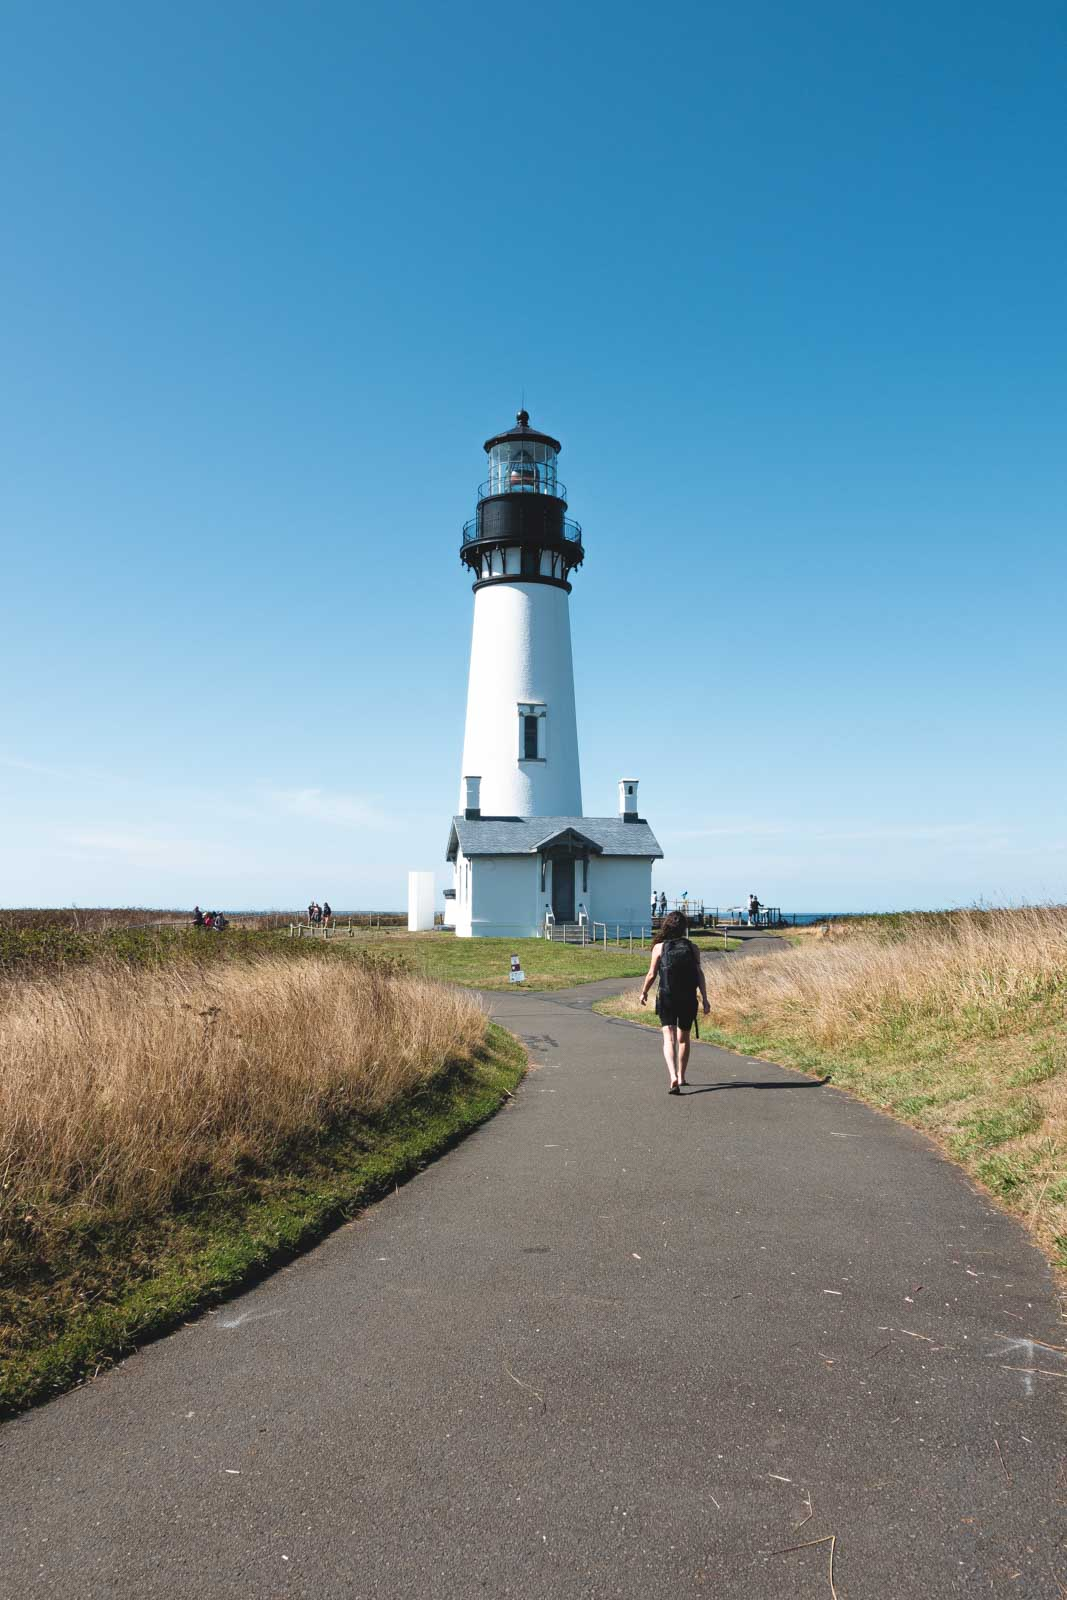 Yaquina Head Lighthouse with person walking path towards it